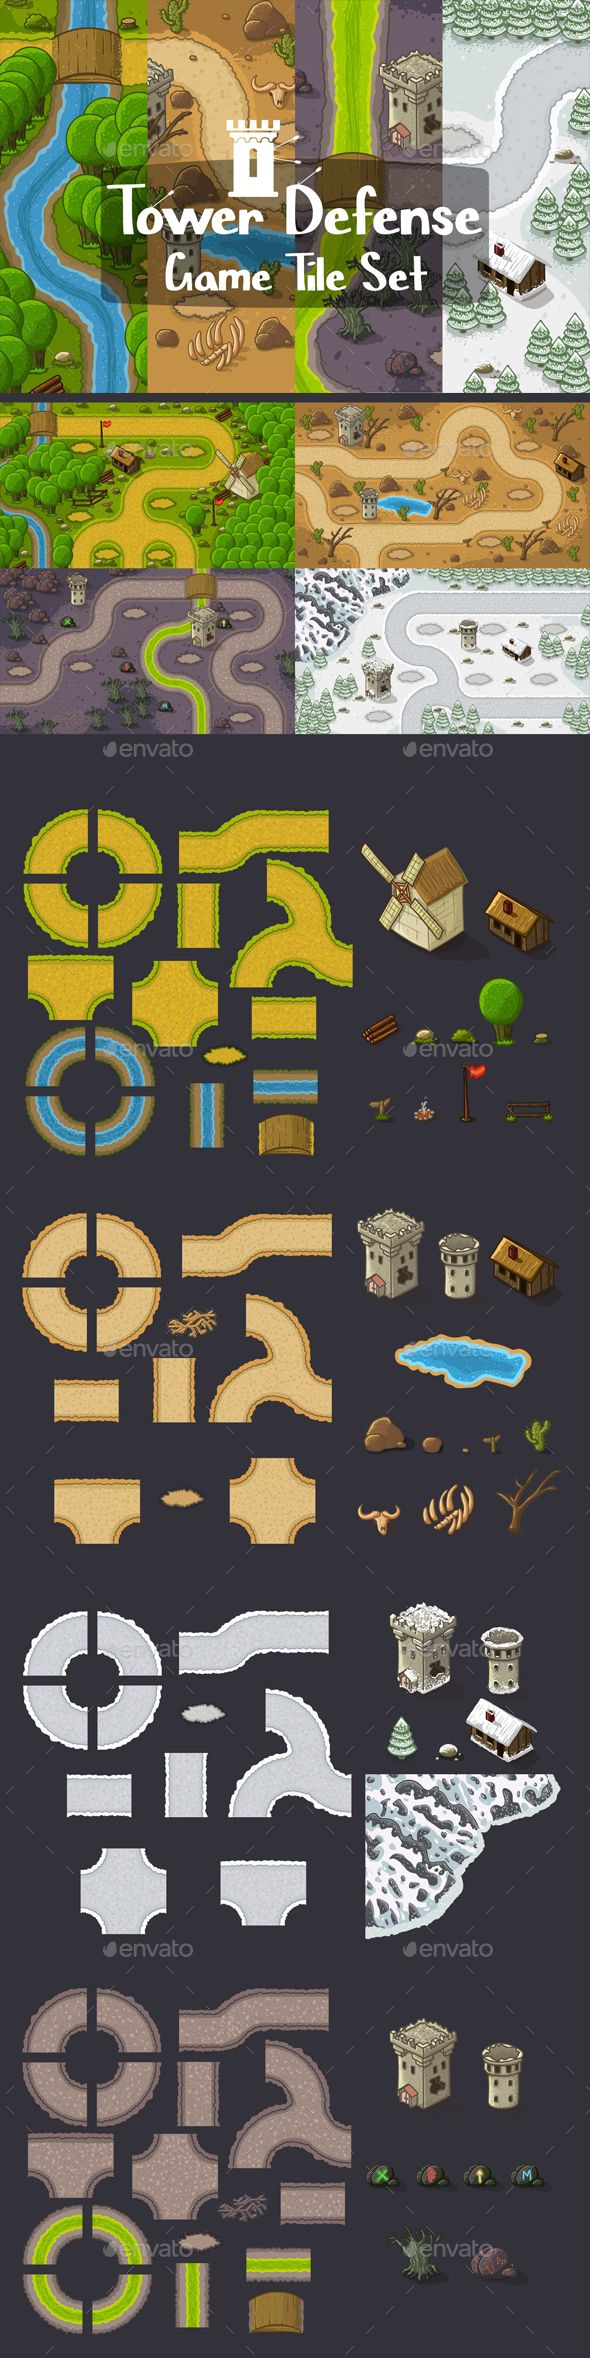 #Tower Defense Tile Sets - Tilesets #Game #Assets